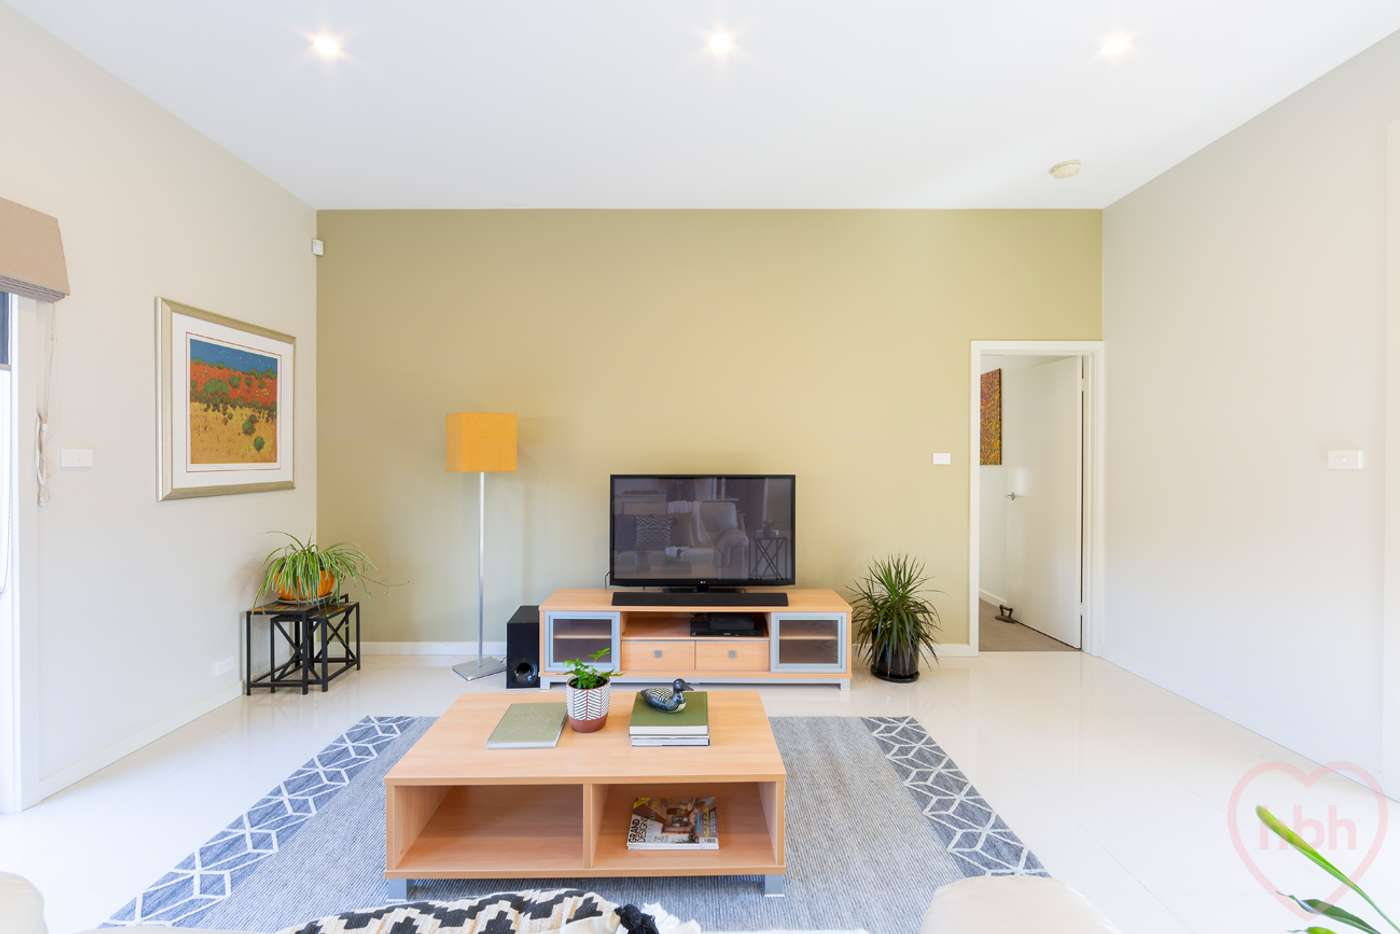 Sixth view of Homely house listing, 3 Blizzard Circuit, Forde ACT 2914